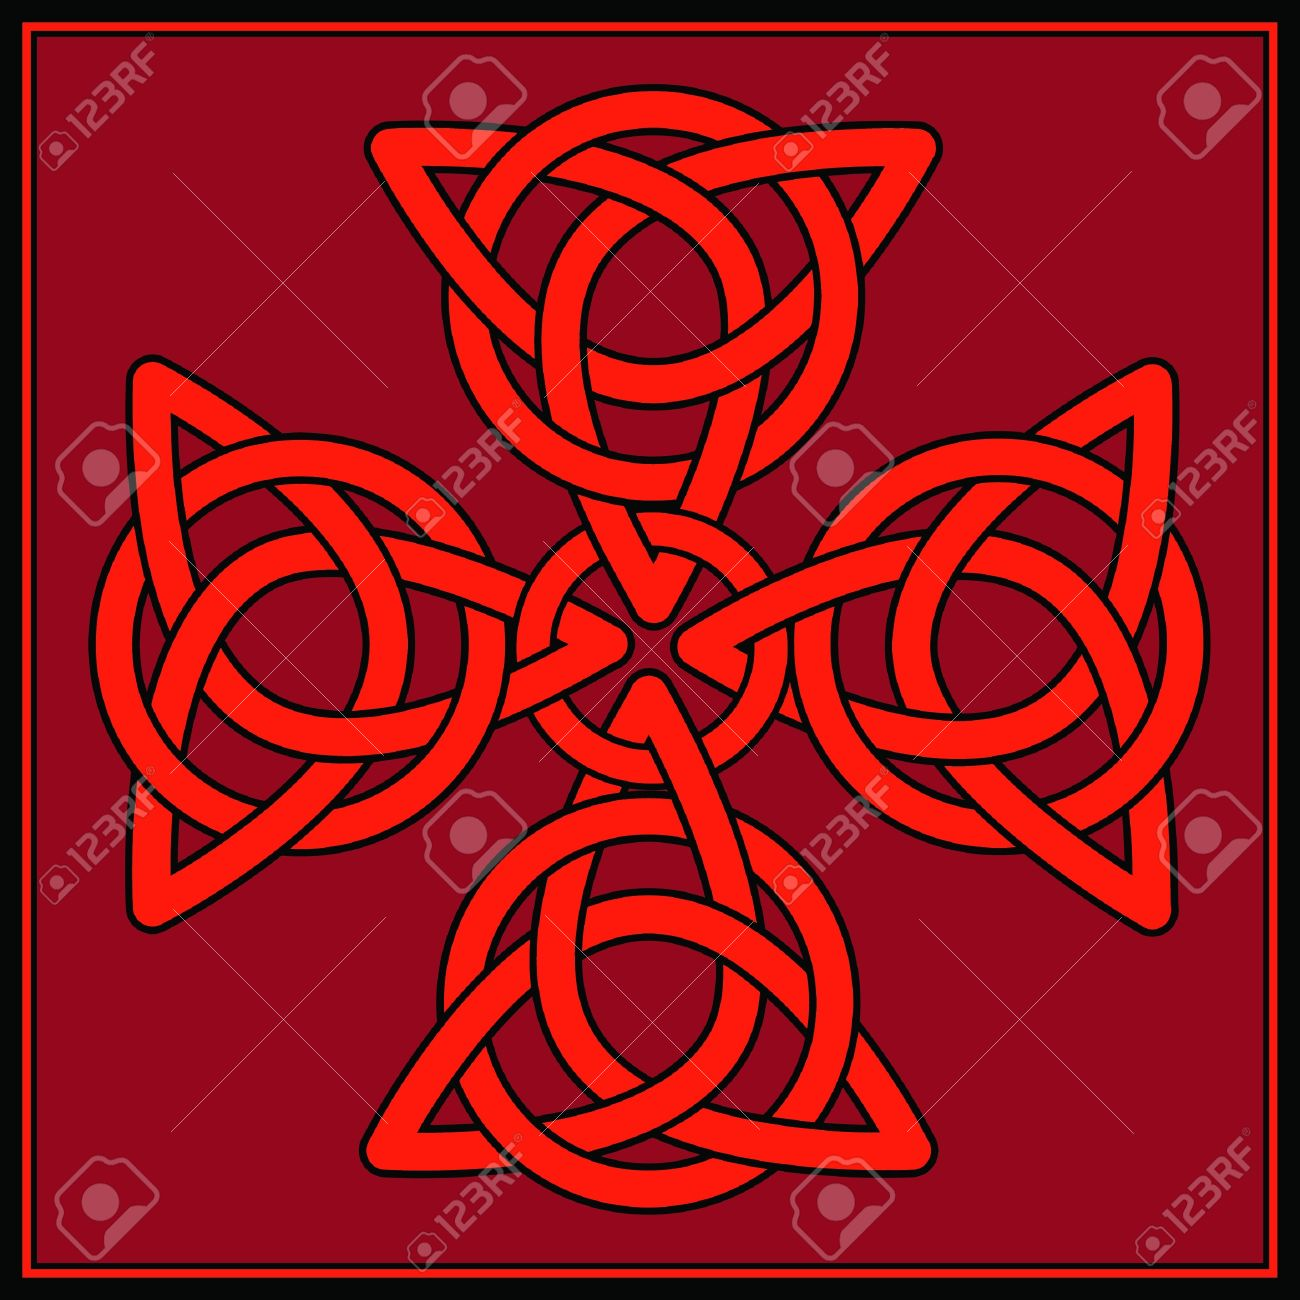 A Cross formed of celtic knots in shades of red and black Stock Vector - 10799049